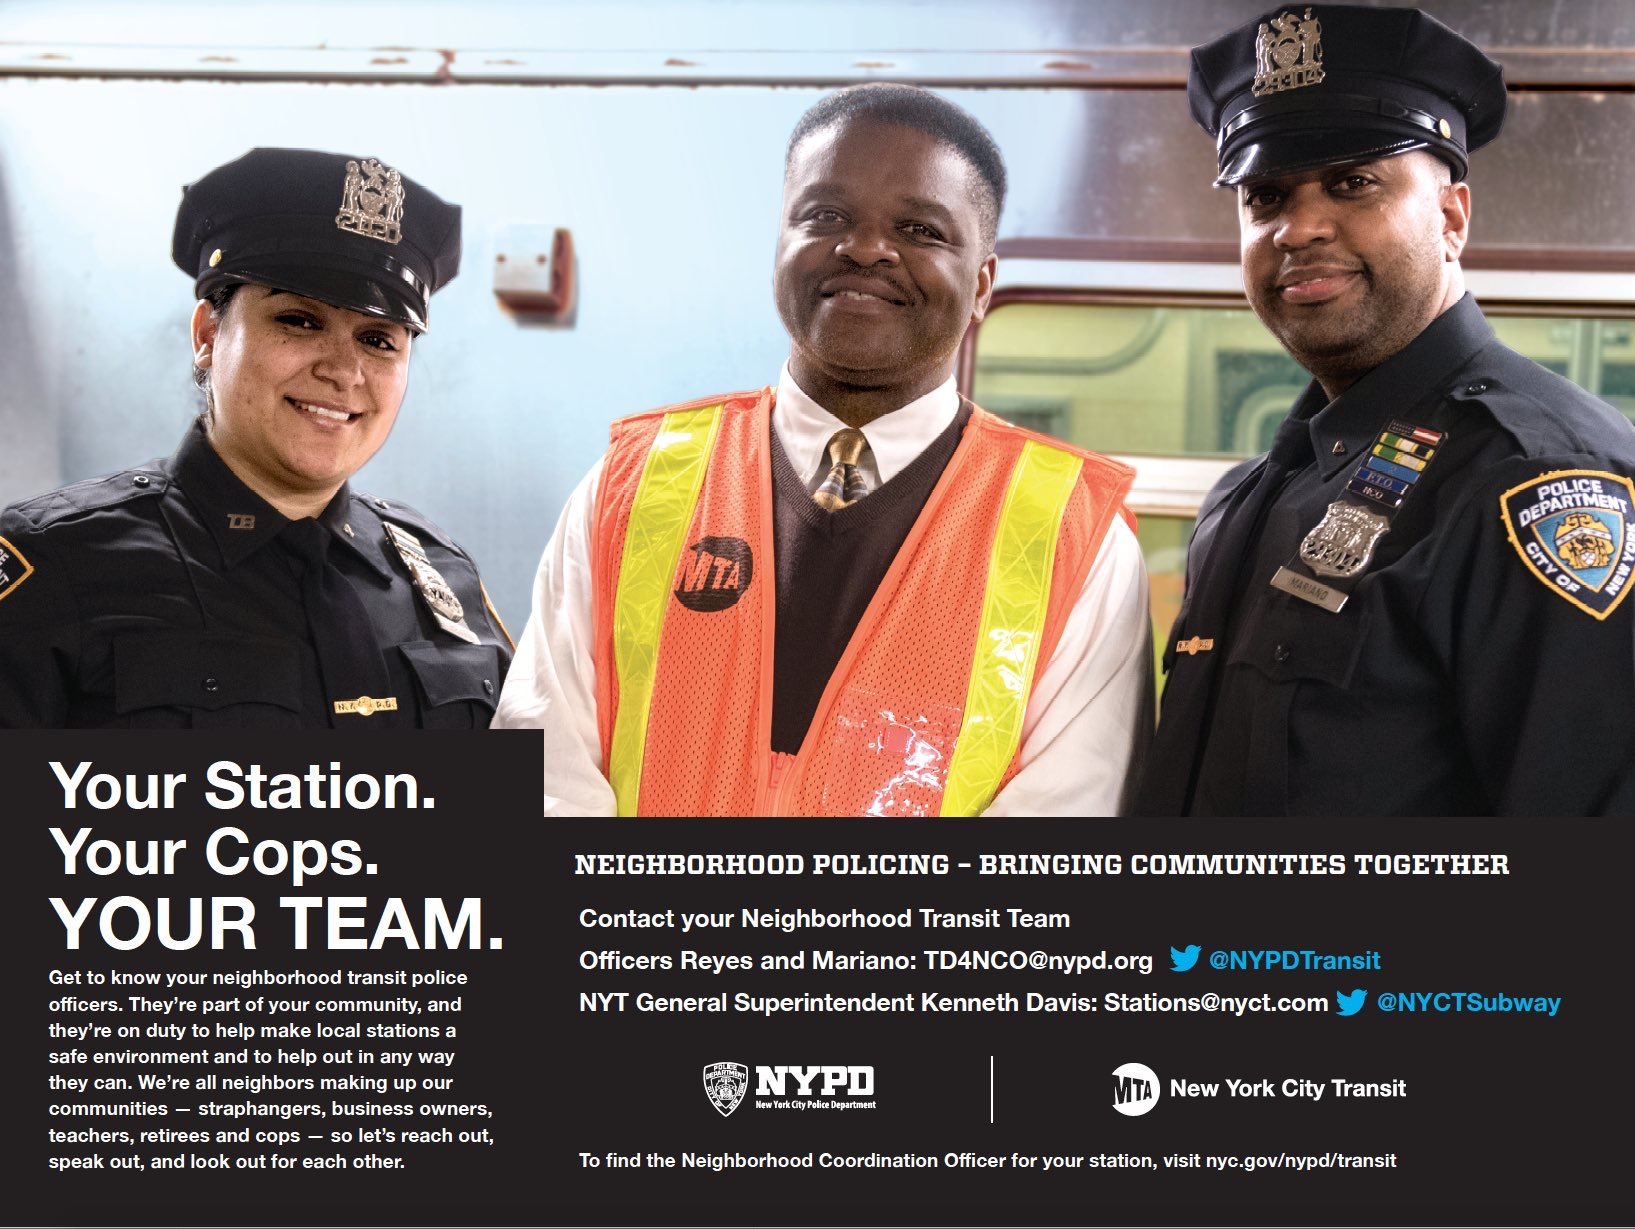 Two NYPD Officers and an MTA member strategize about neighborhood transit policing